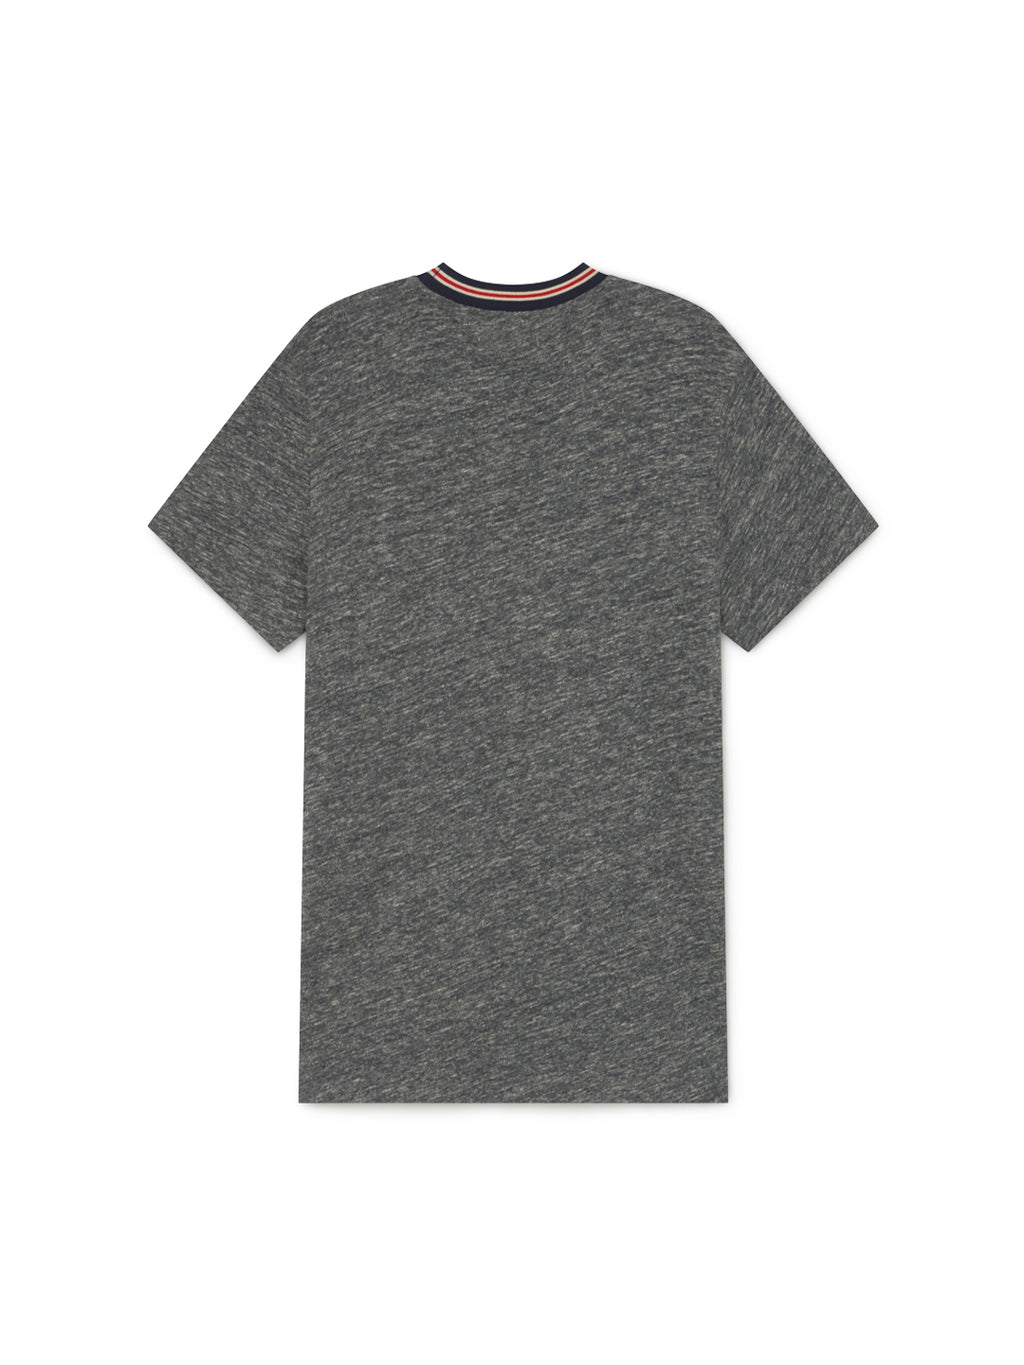 TWOTHIRDS Mens Tee: Level - Grey back